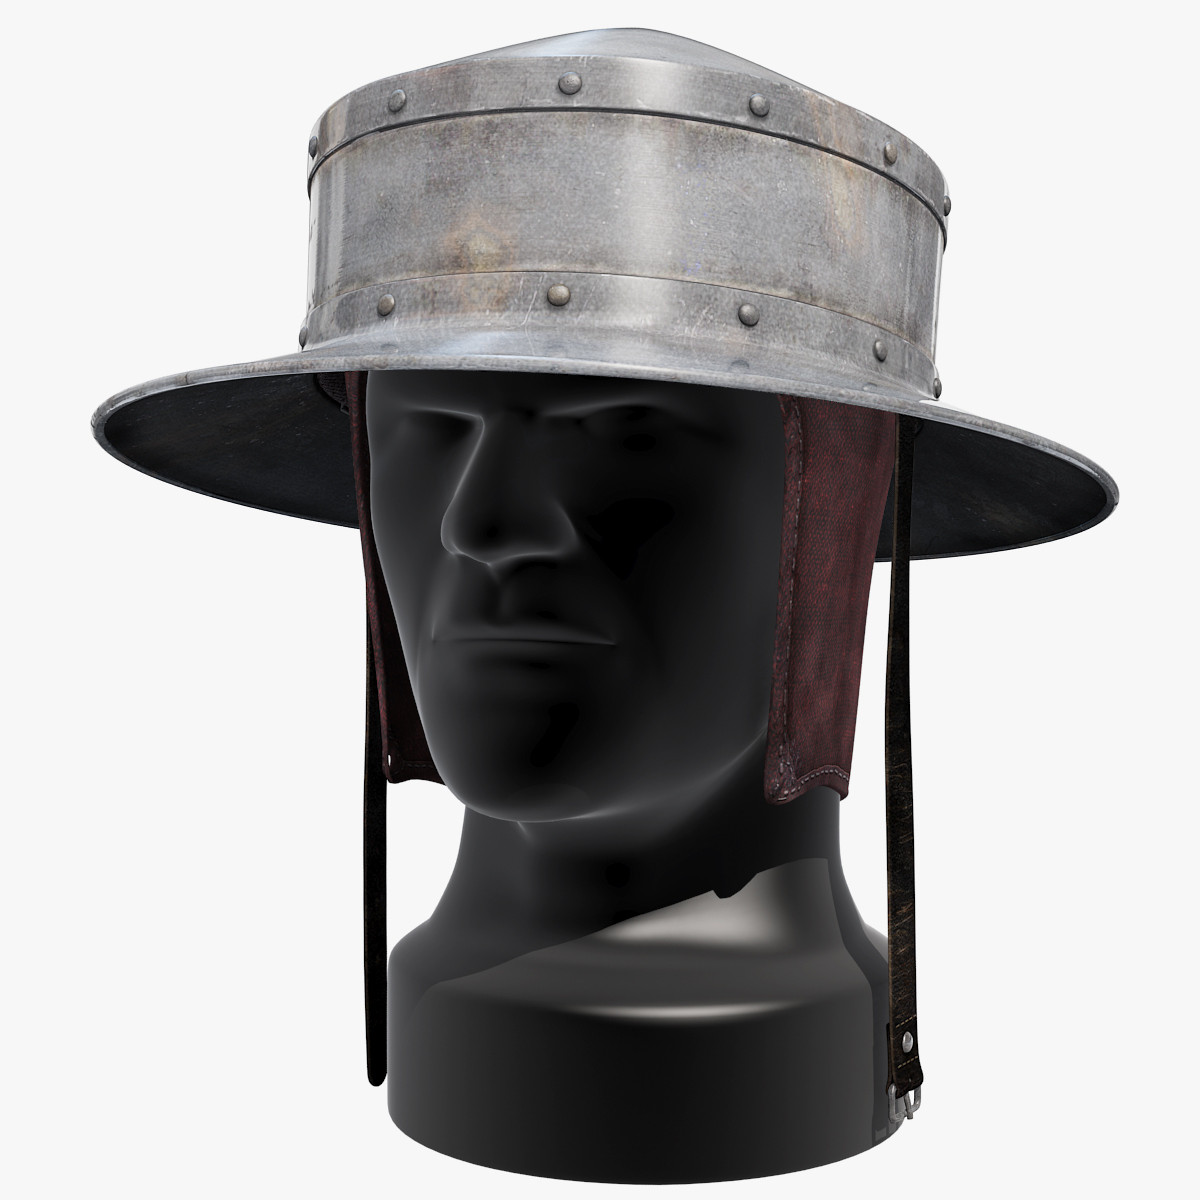 pointed_kettle_hat_01.jpg